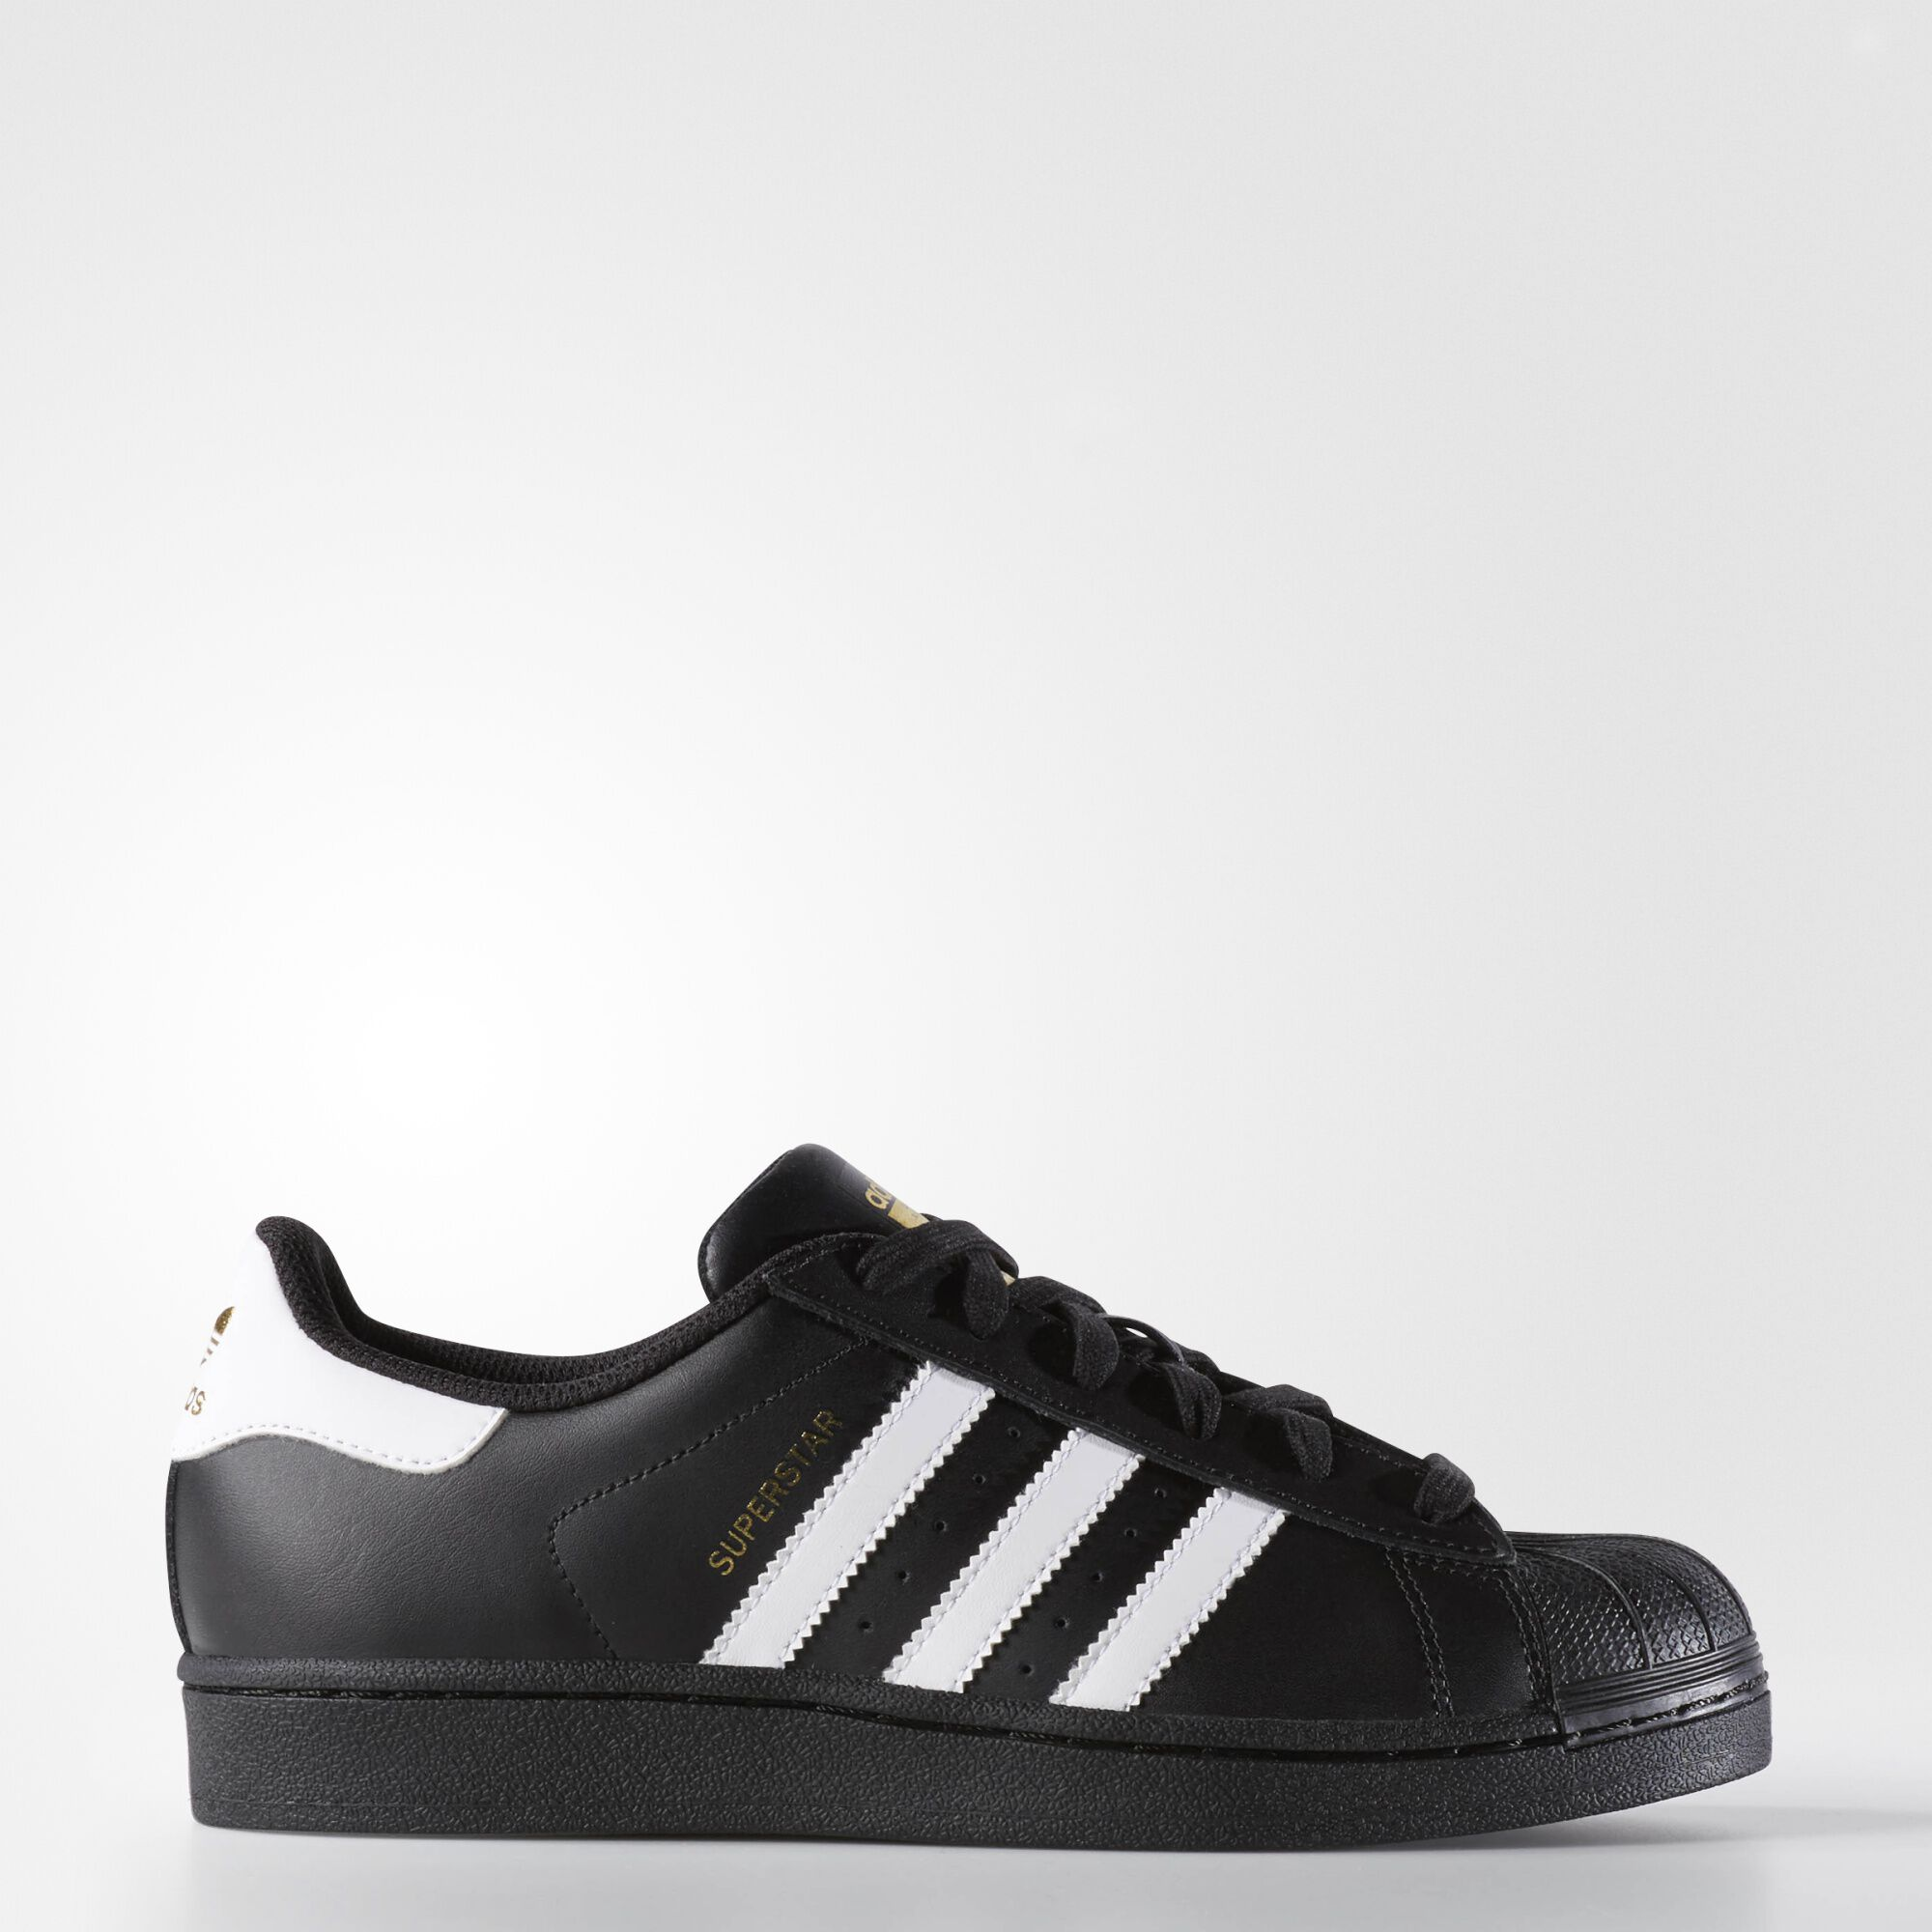 adidas superstar foundation black DLF Promenade